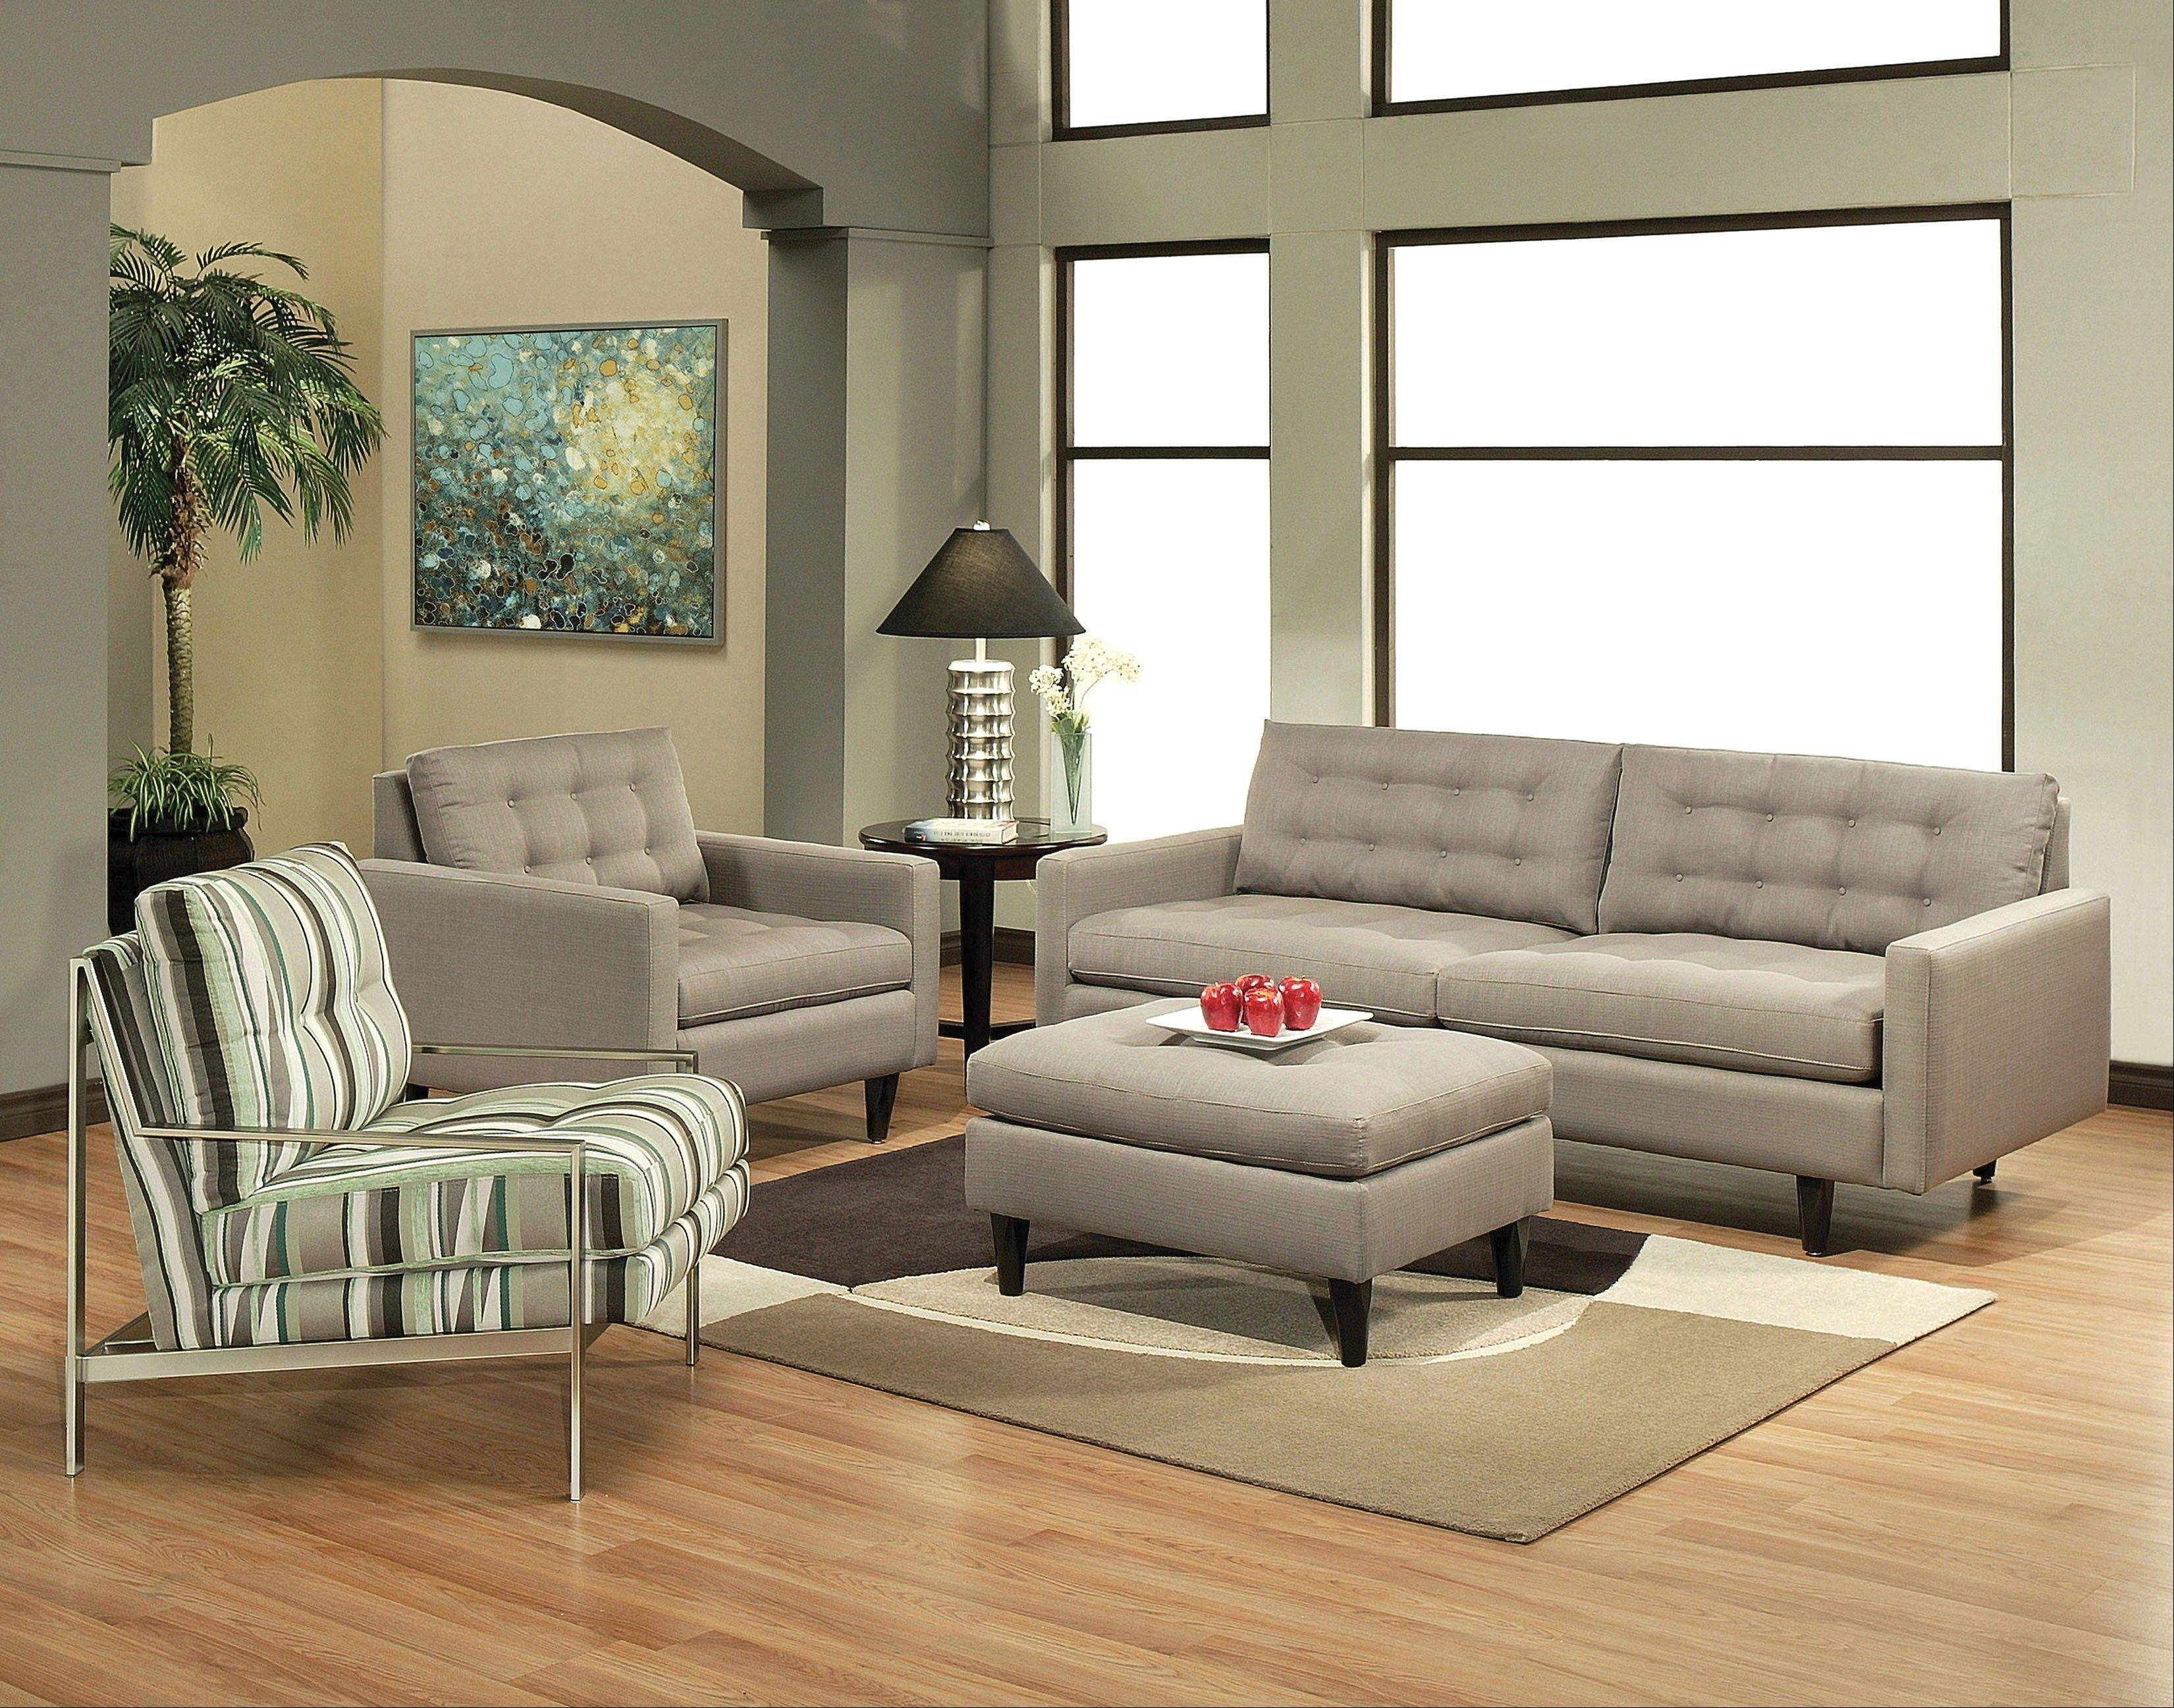 Consumers are choosing warm neutral colors -- grays and taupes -- for sectionals, couches and chairs.